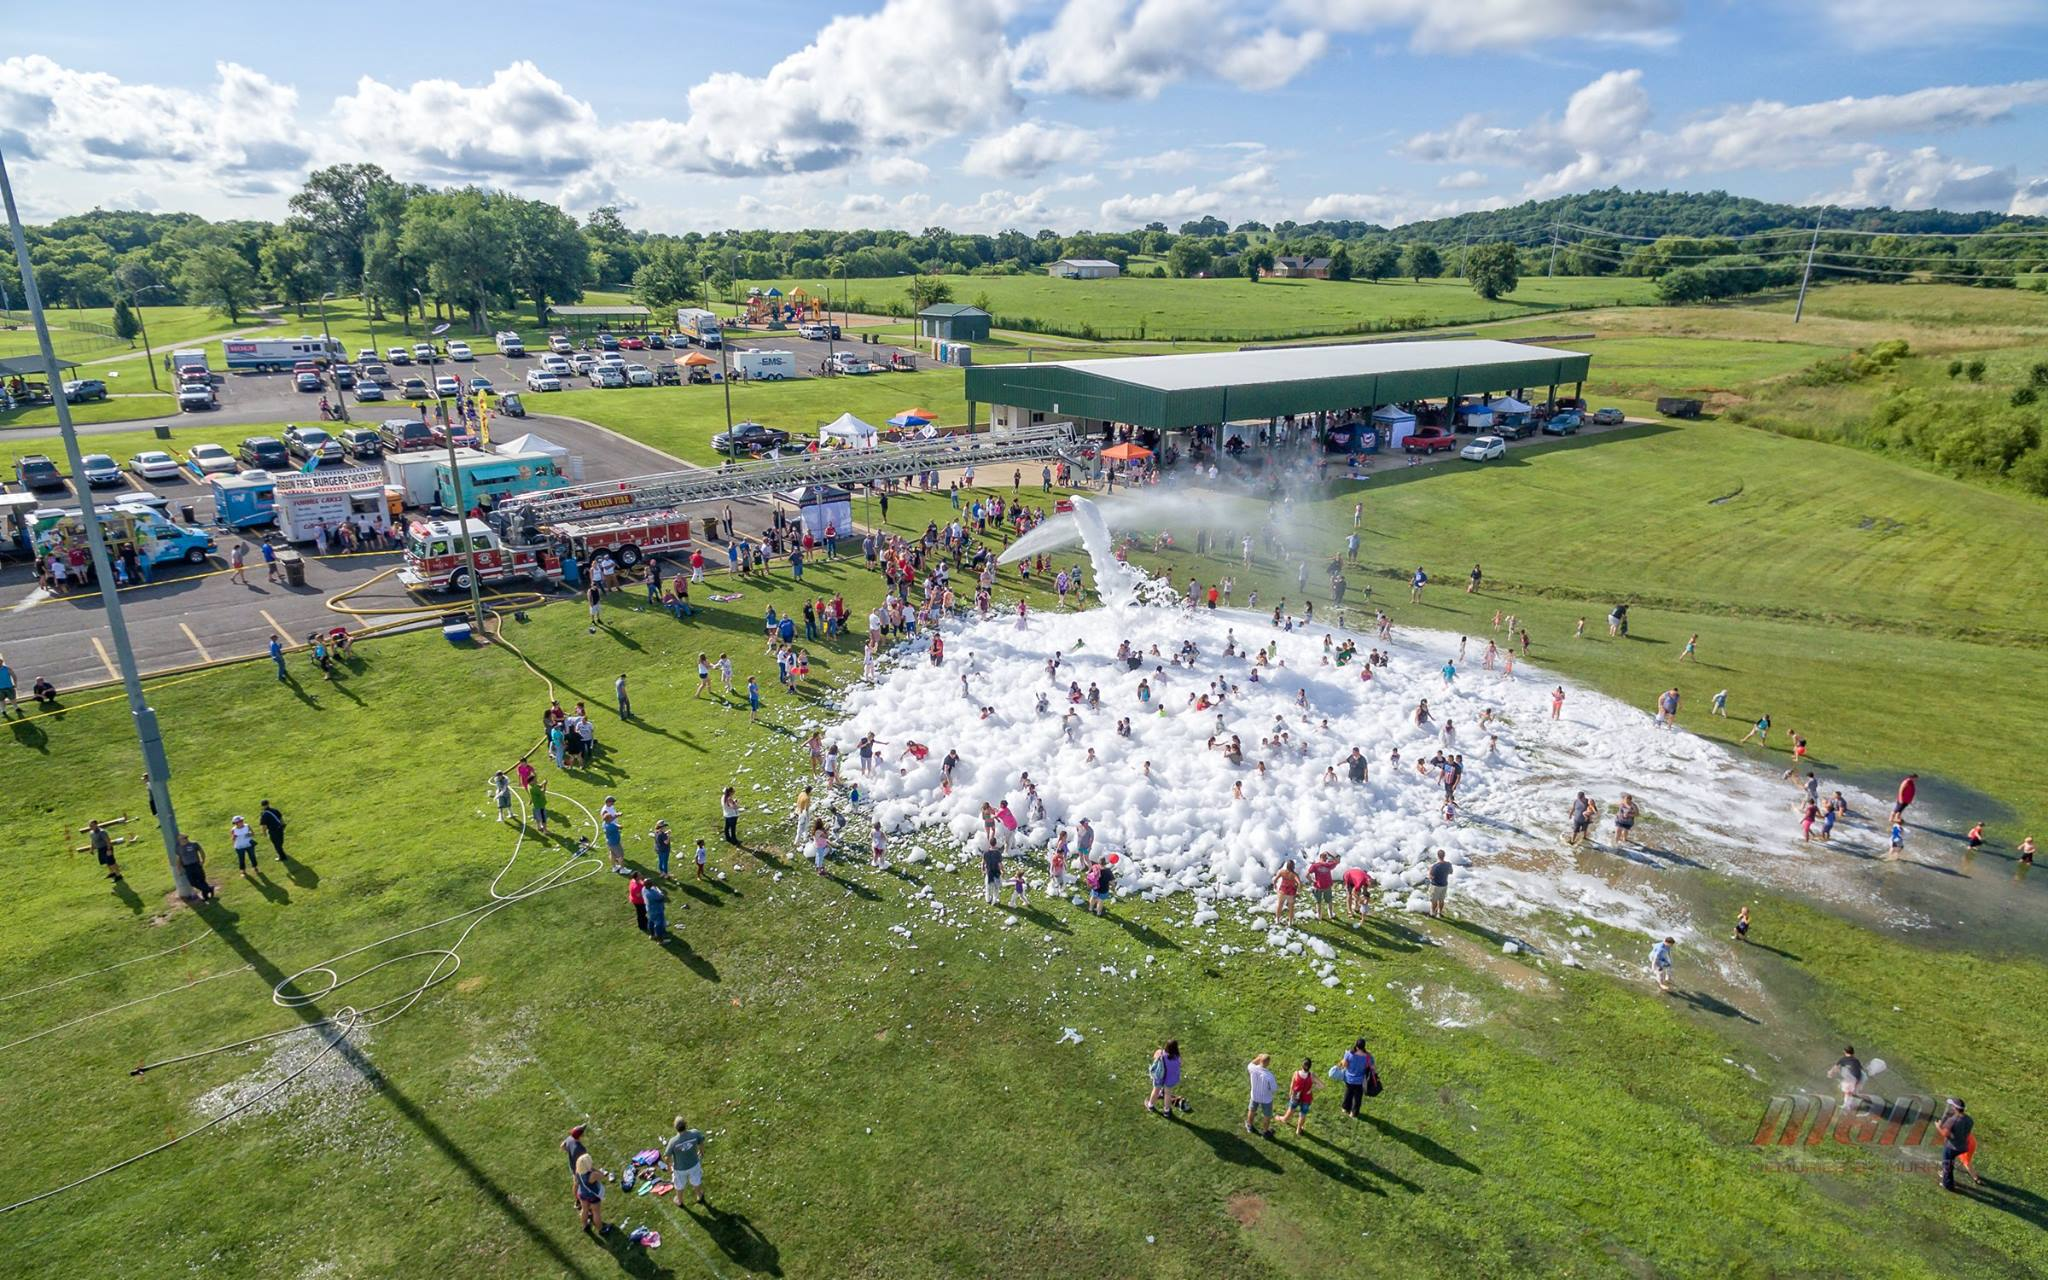 Gallatin's Independence Day Festival and Fireworks Display Returns